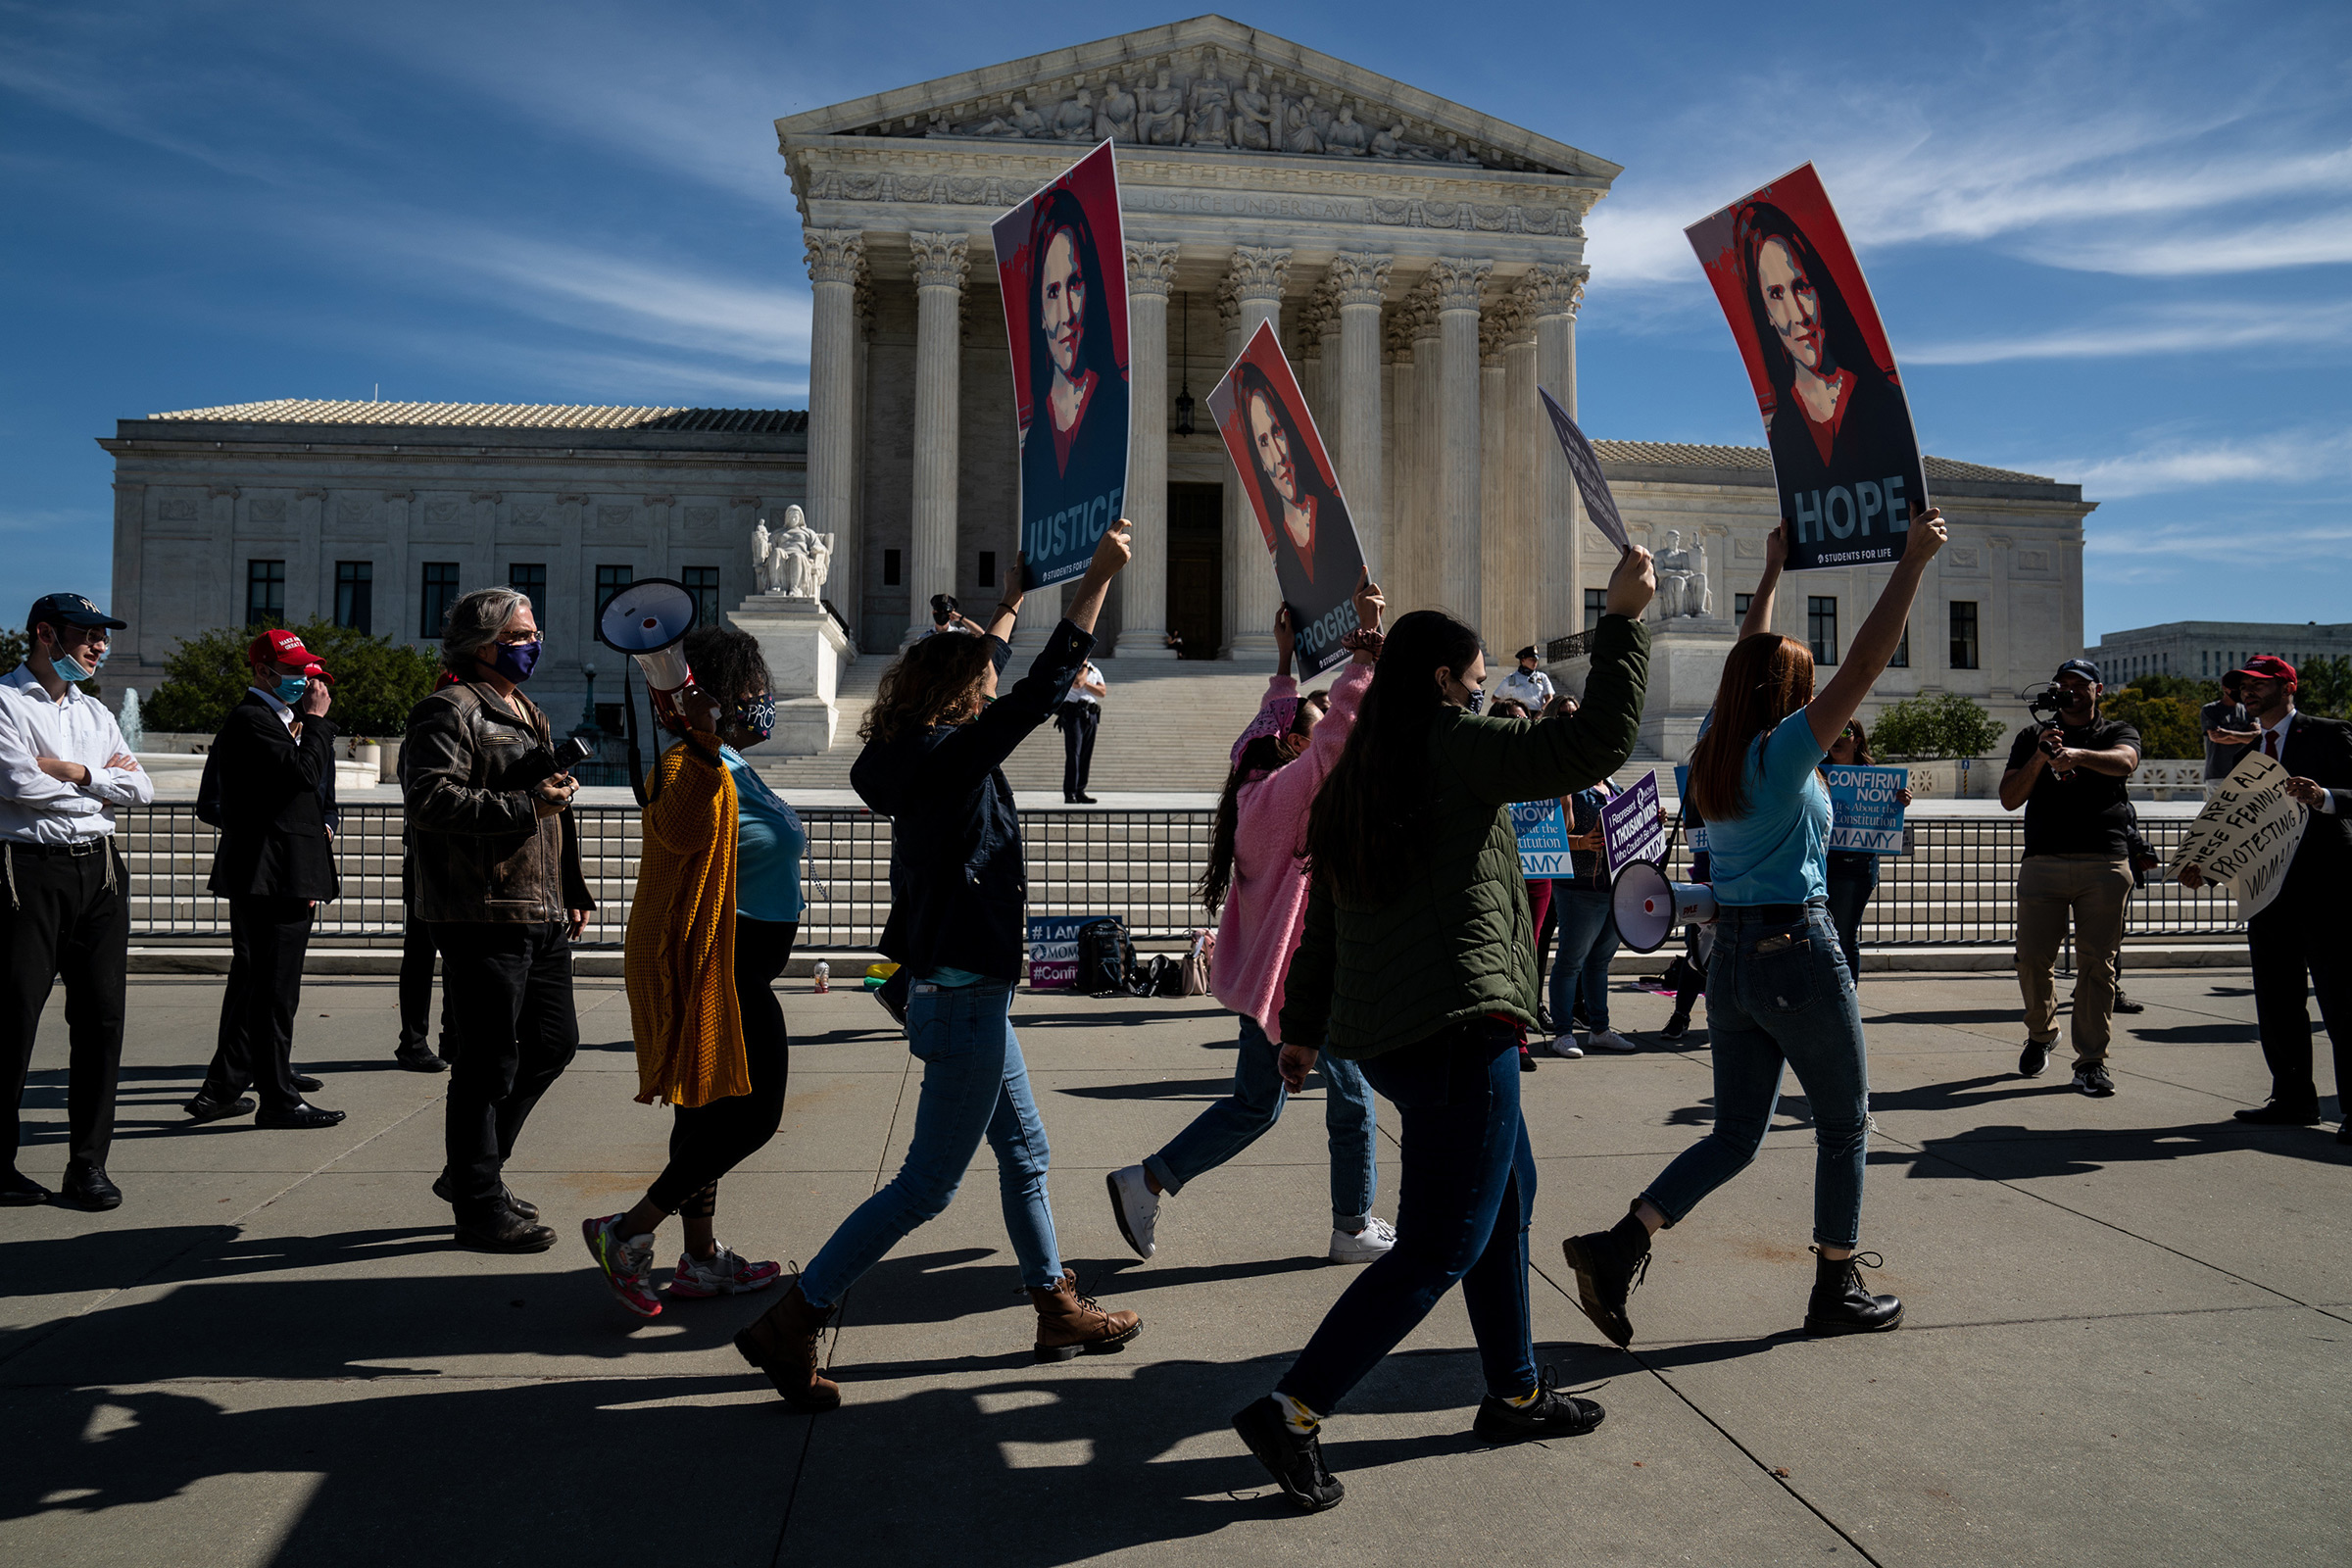 Supporters of Judge Amy Coney Barrett stand outside the Supreme Court in Washington, D.C., on Oct. 14.